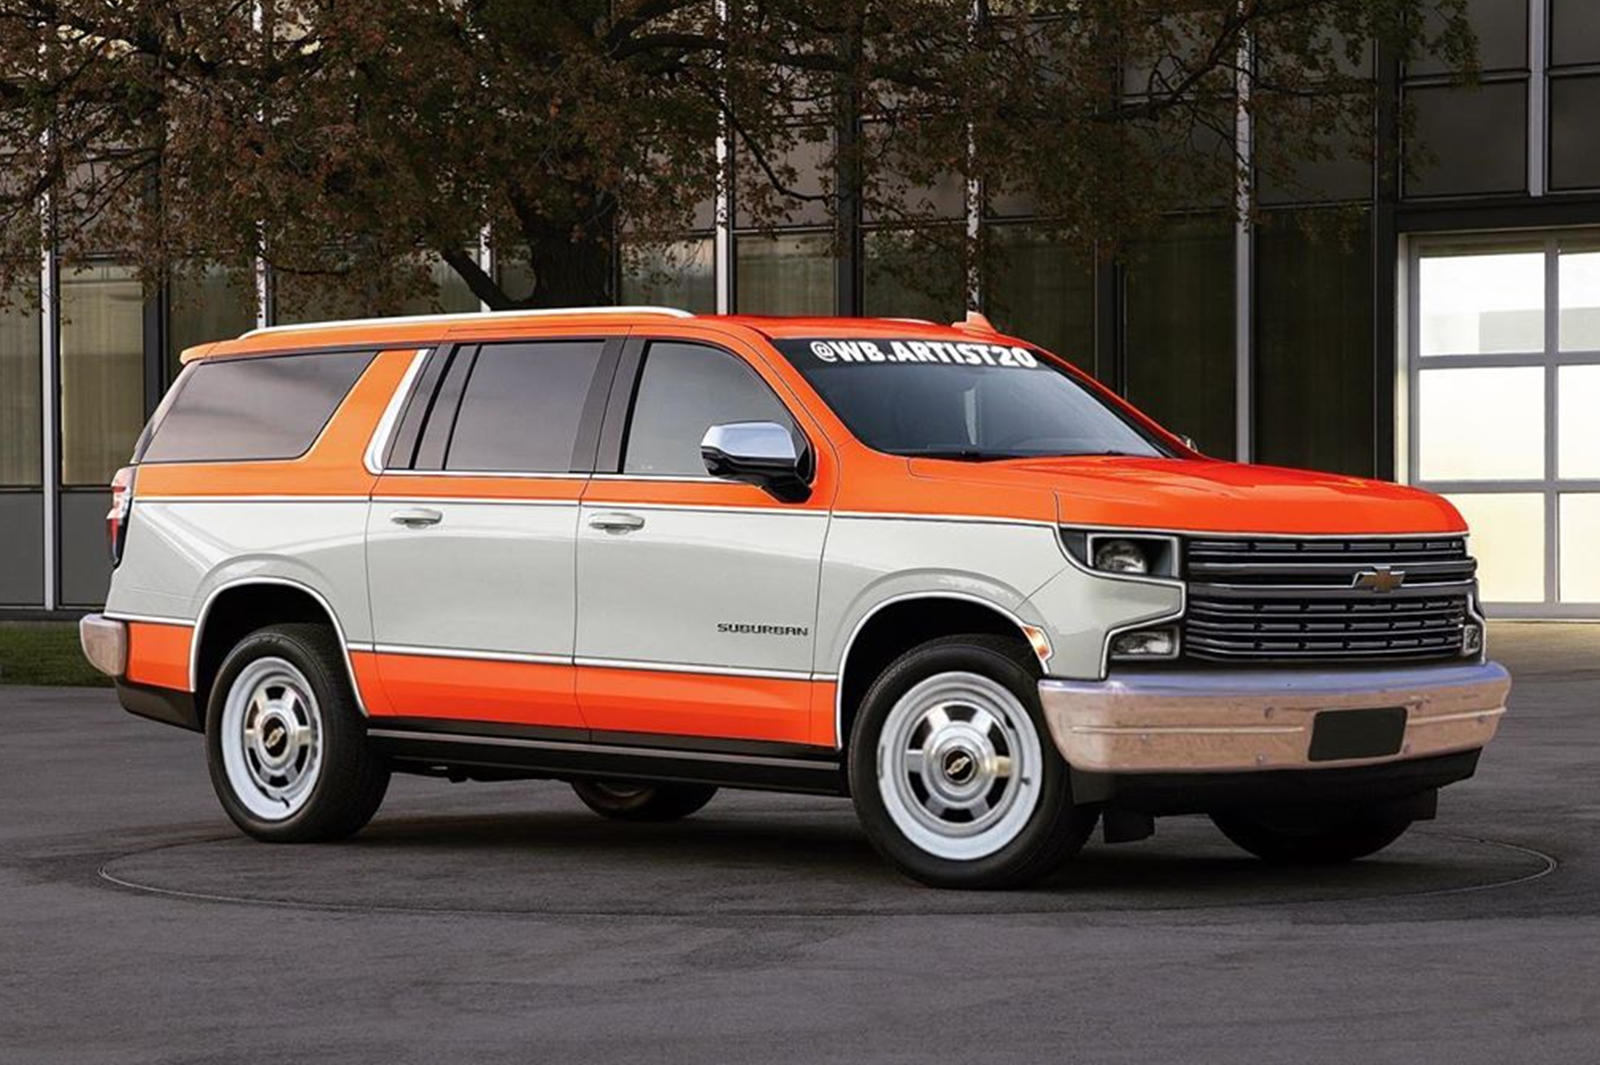 Chevrolet Suburban Comes To Life With Retro Styling